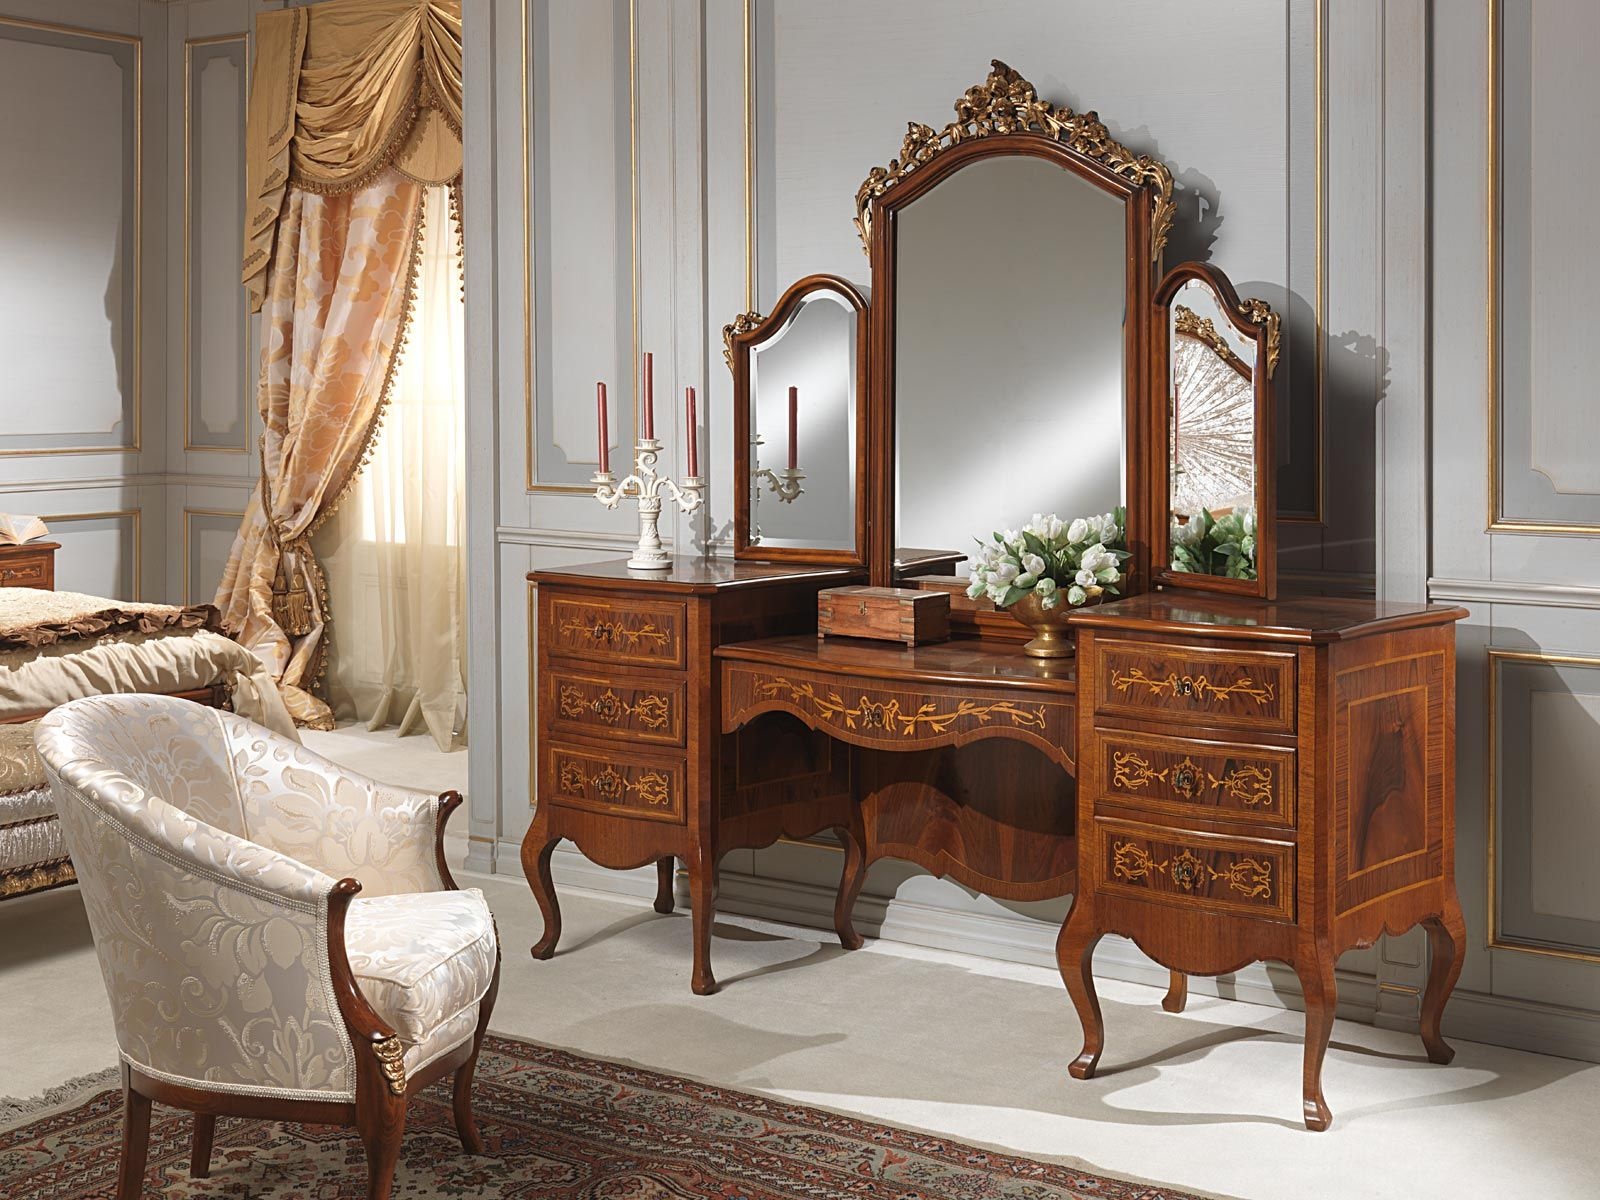 Indian dressing table designs with mirror - Classic Louvre Bedroom Dressing Table With Mirror Vimercati Classic Furniture